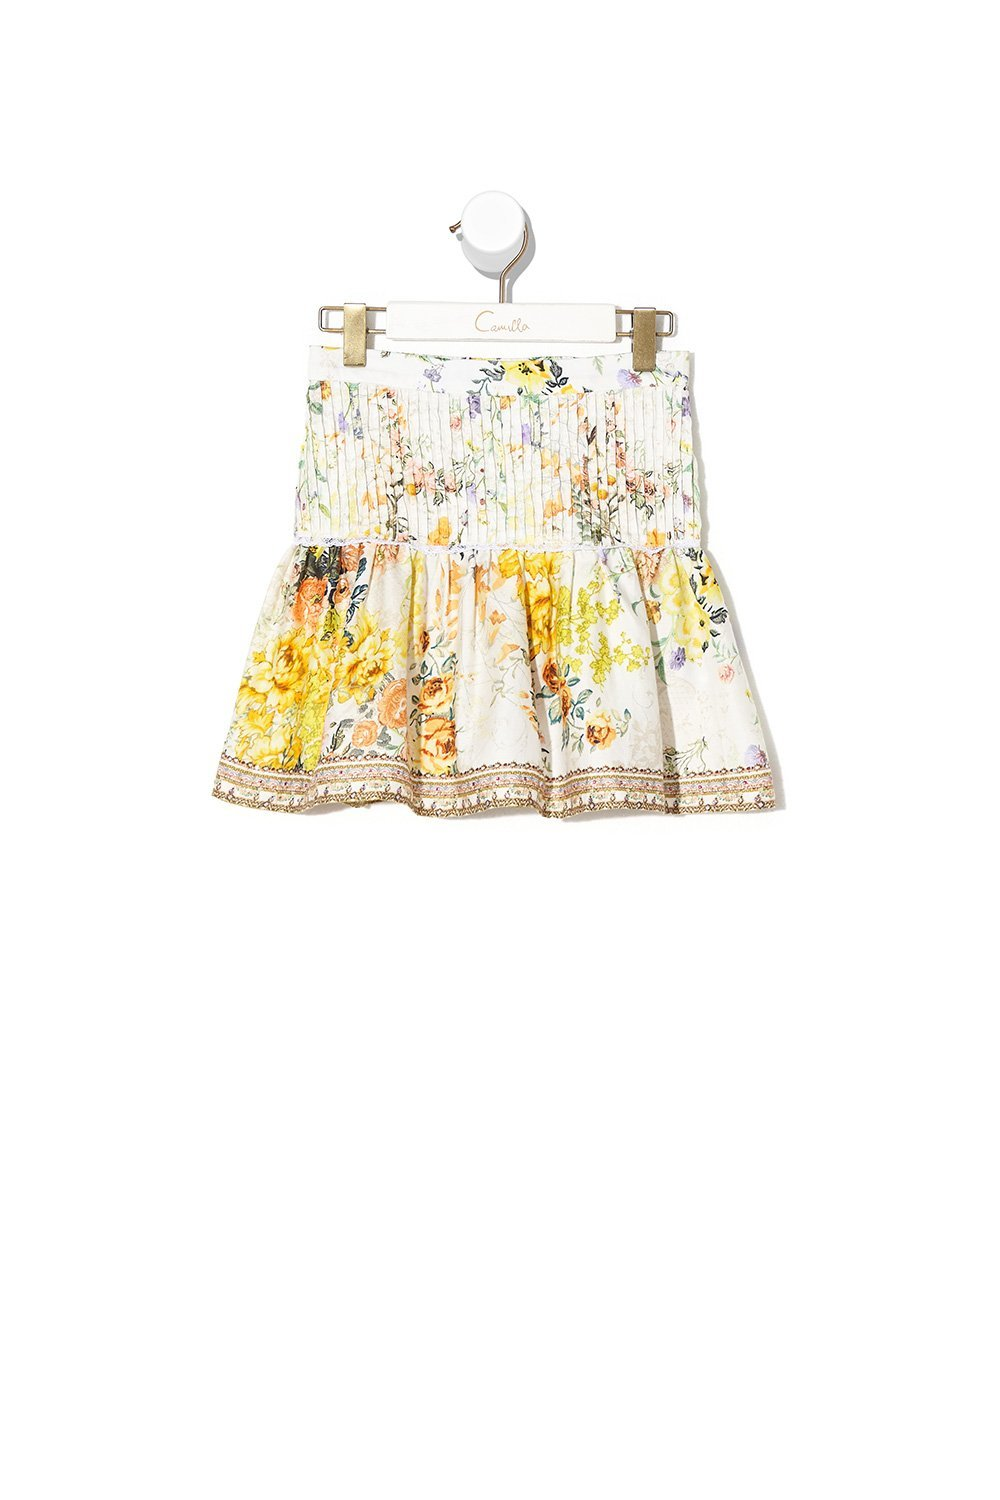 KIDS SKIRT WITH PINTUCKING IN THE HILLS OF TUSCANY